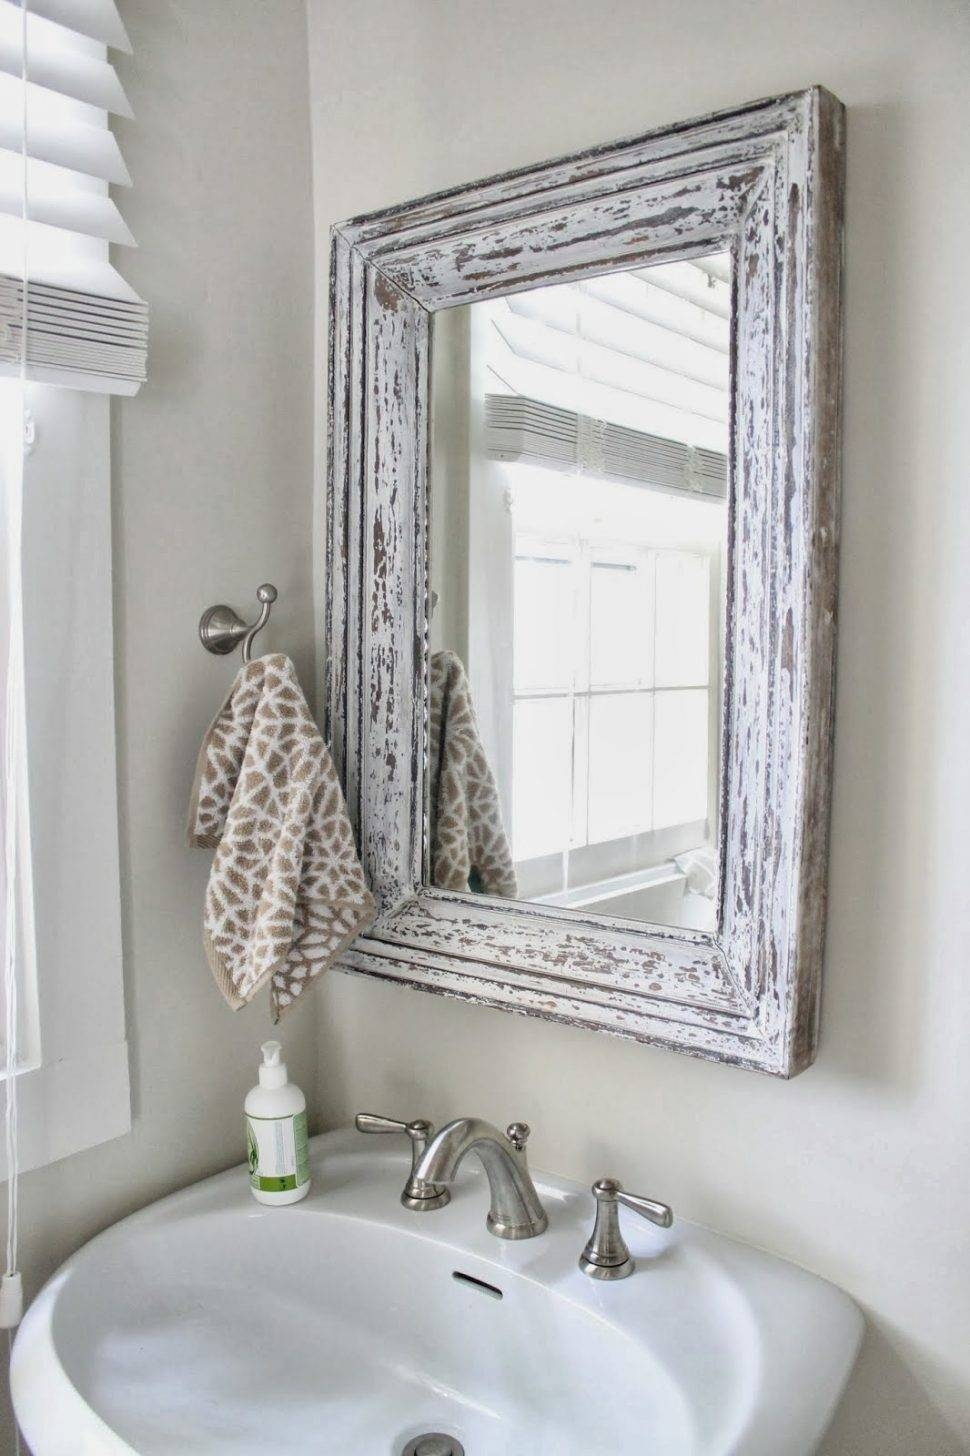 Attractive Design Ideas Shabby Chic Bathroom Mirror 50 Amazing in Large White Shabby Chic Mirrors (Image 2 of 15)